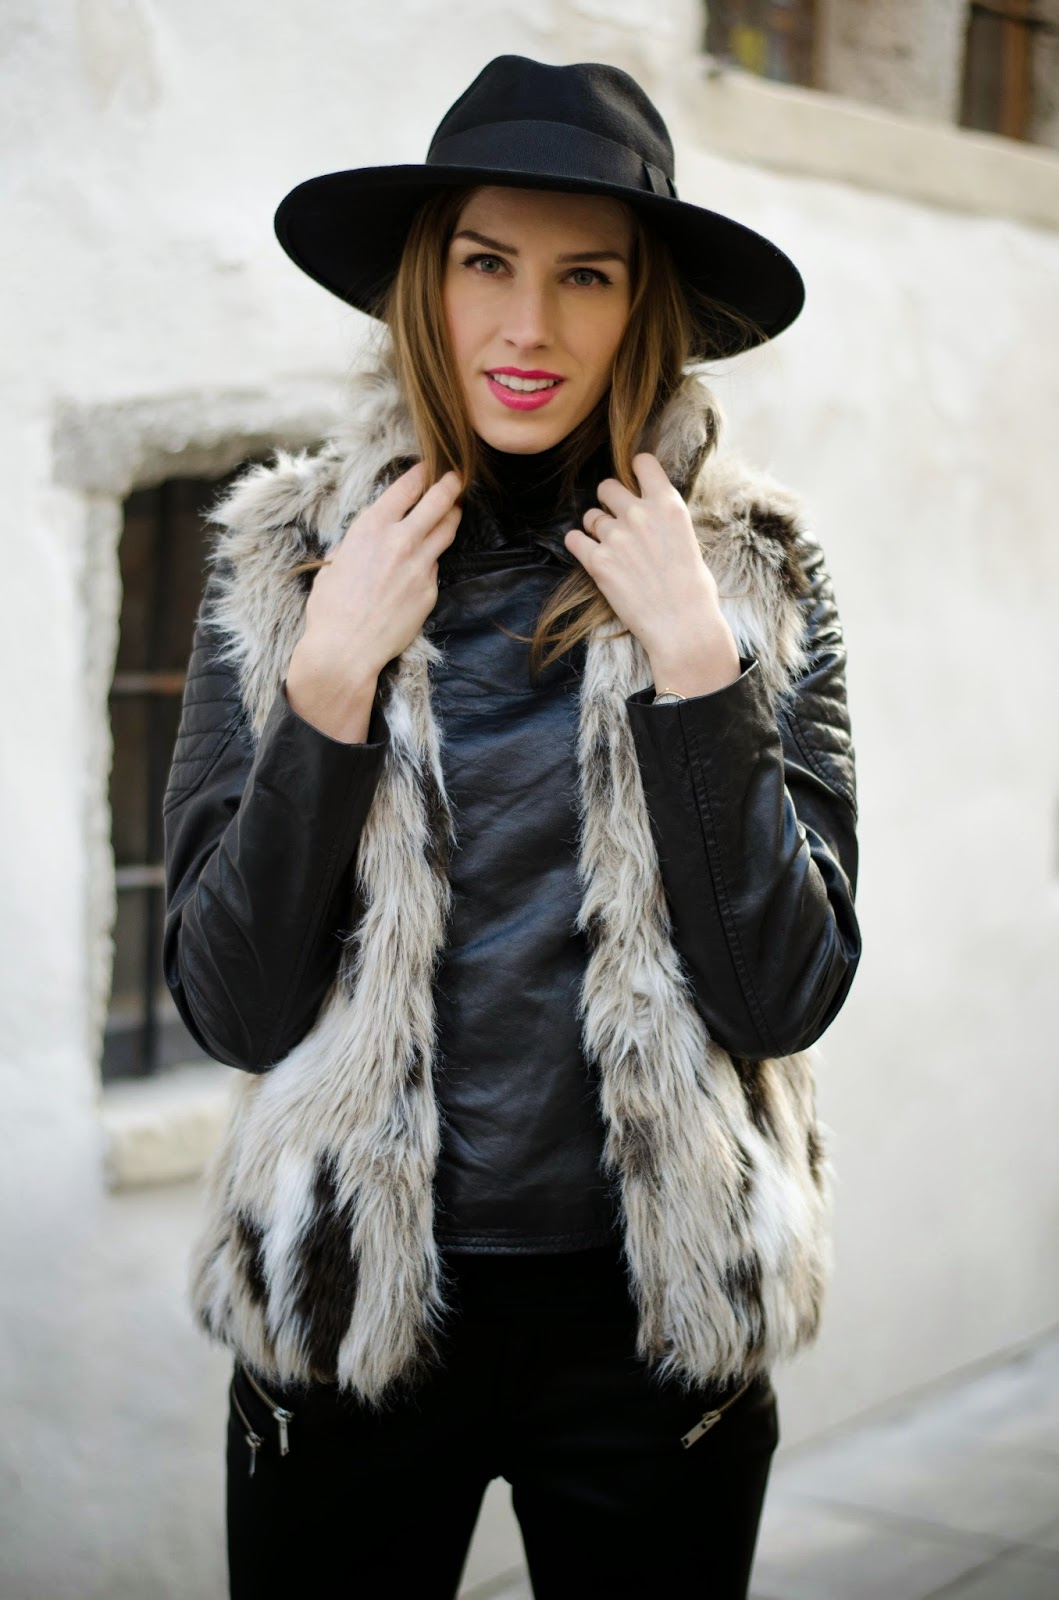 kristjaana mere catarzi black felt fedora hat barneys originals leather jacket zara faux fur vest outfit